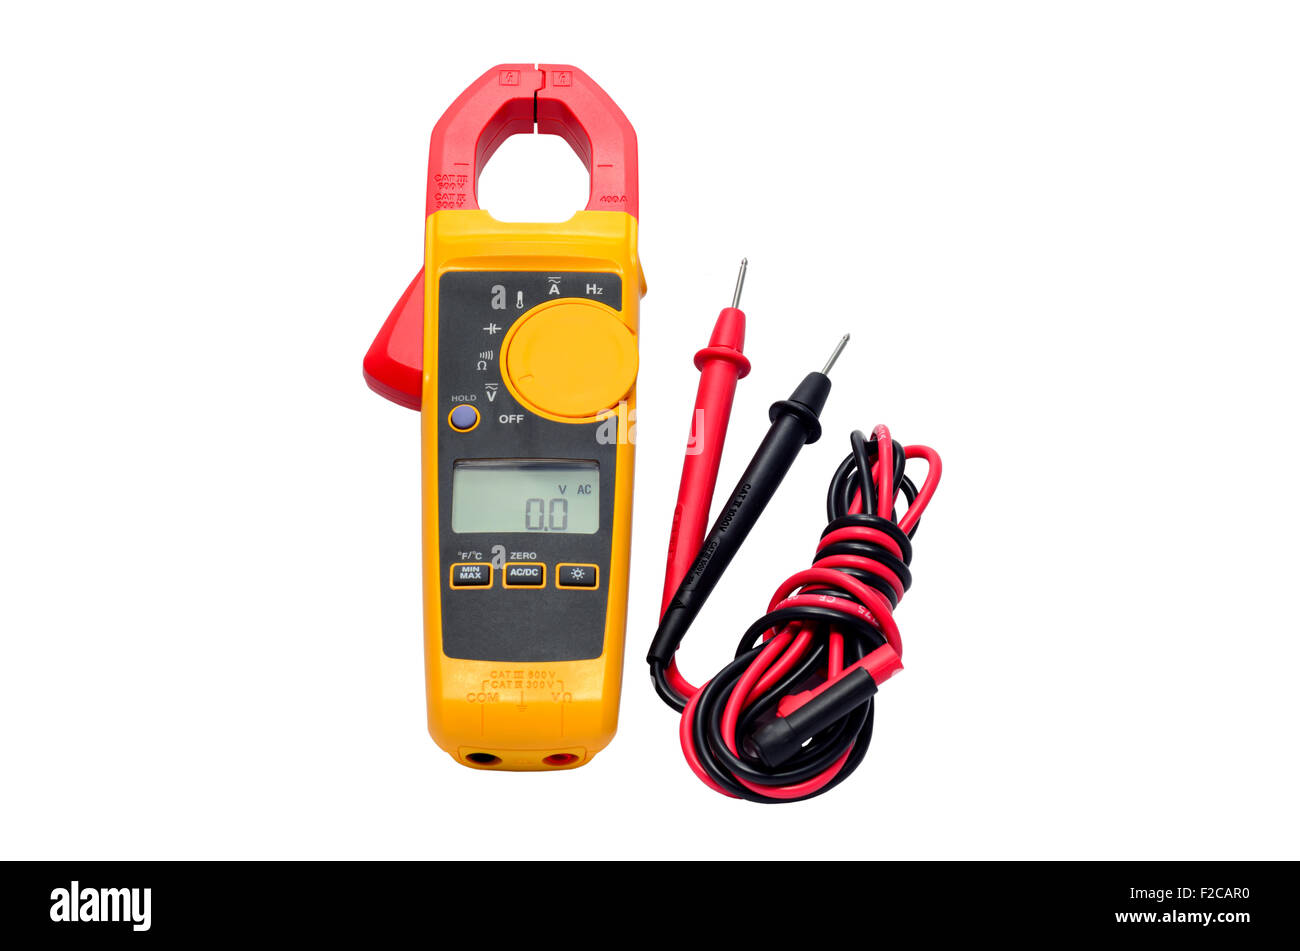 Digital volt meter for Engineering Electrician at work. - Stock Image